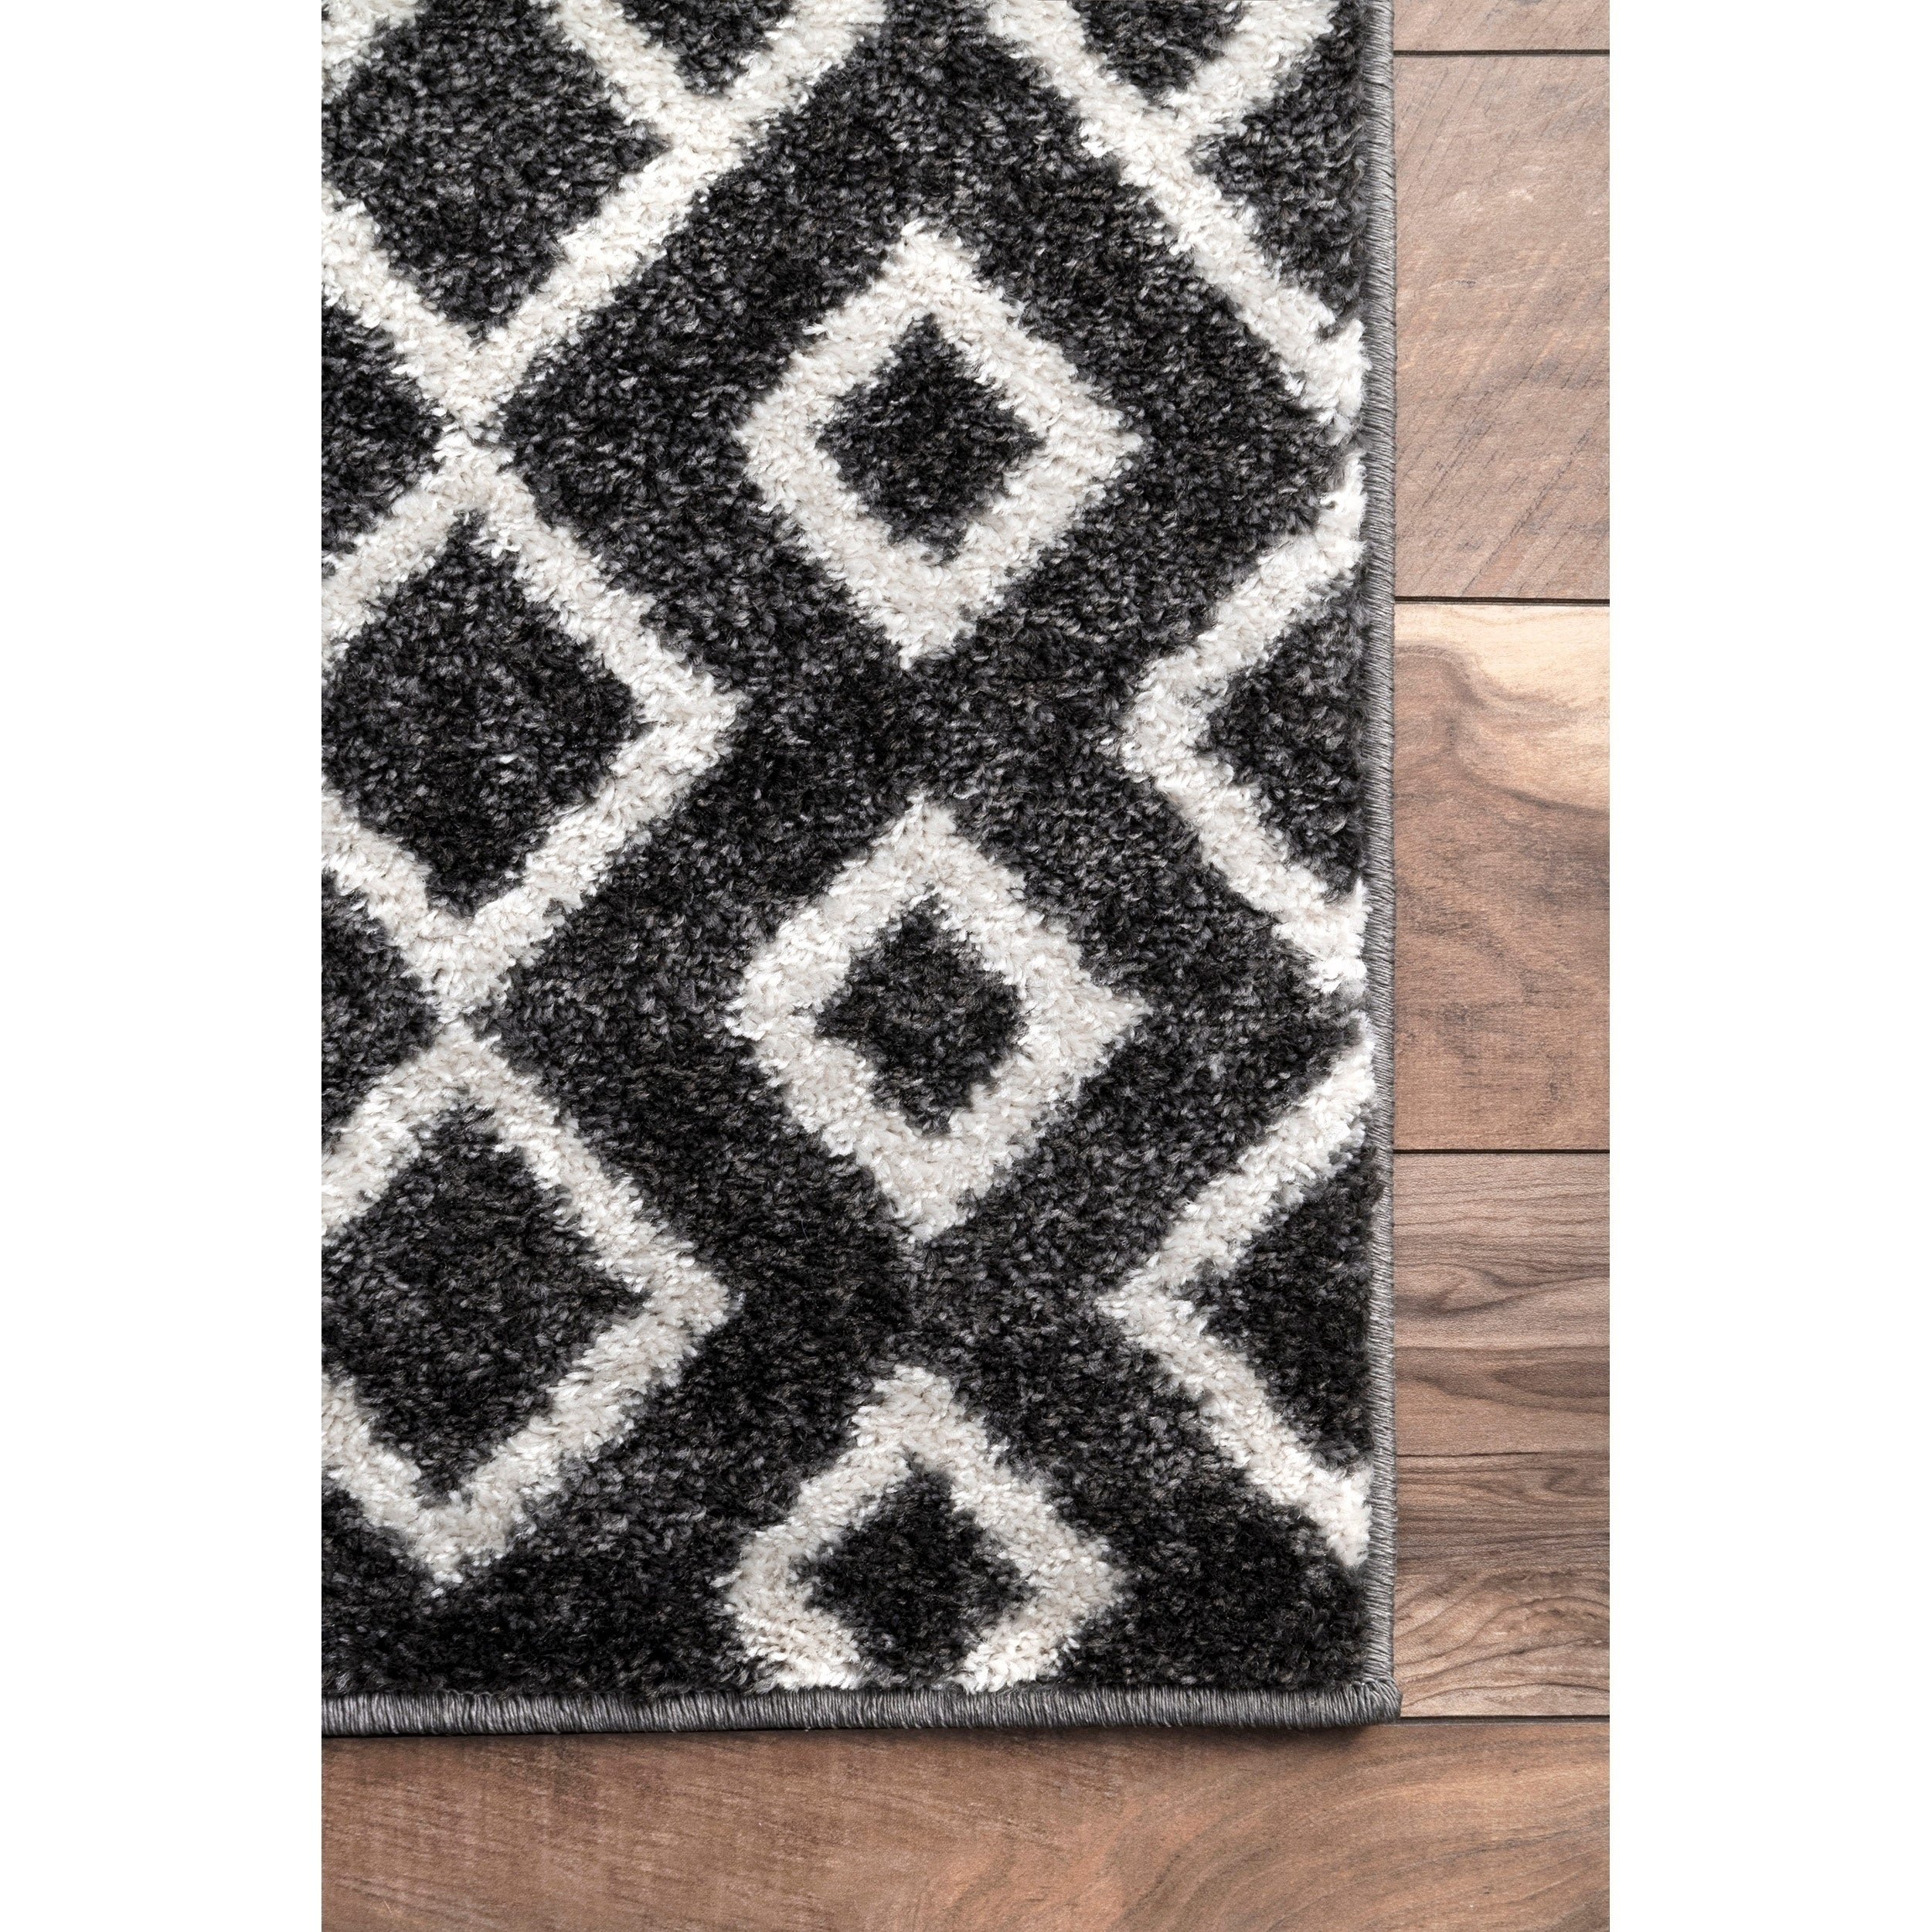 Nuloom Black And White Modern Abstract Boho Electric Lined Ombre Area Rug On Sale Overstock 23001301 5 X 8 Black White